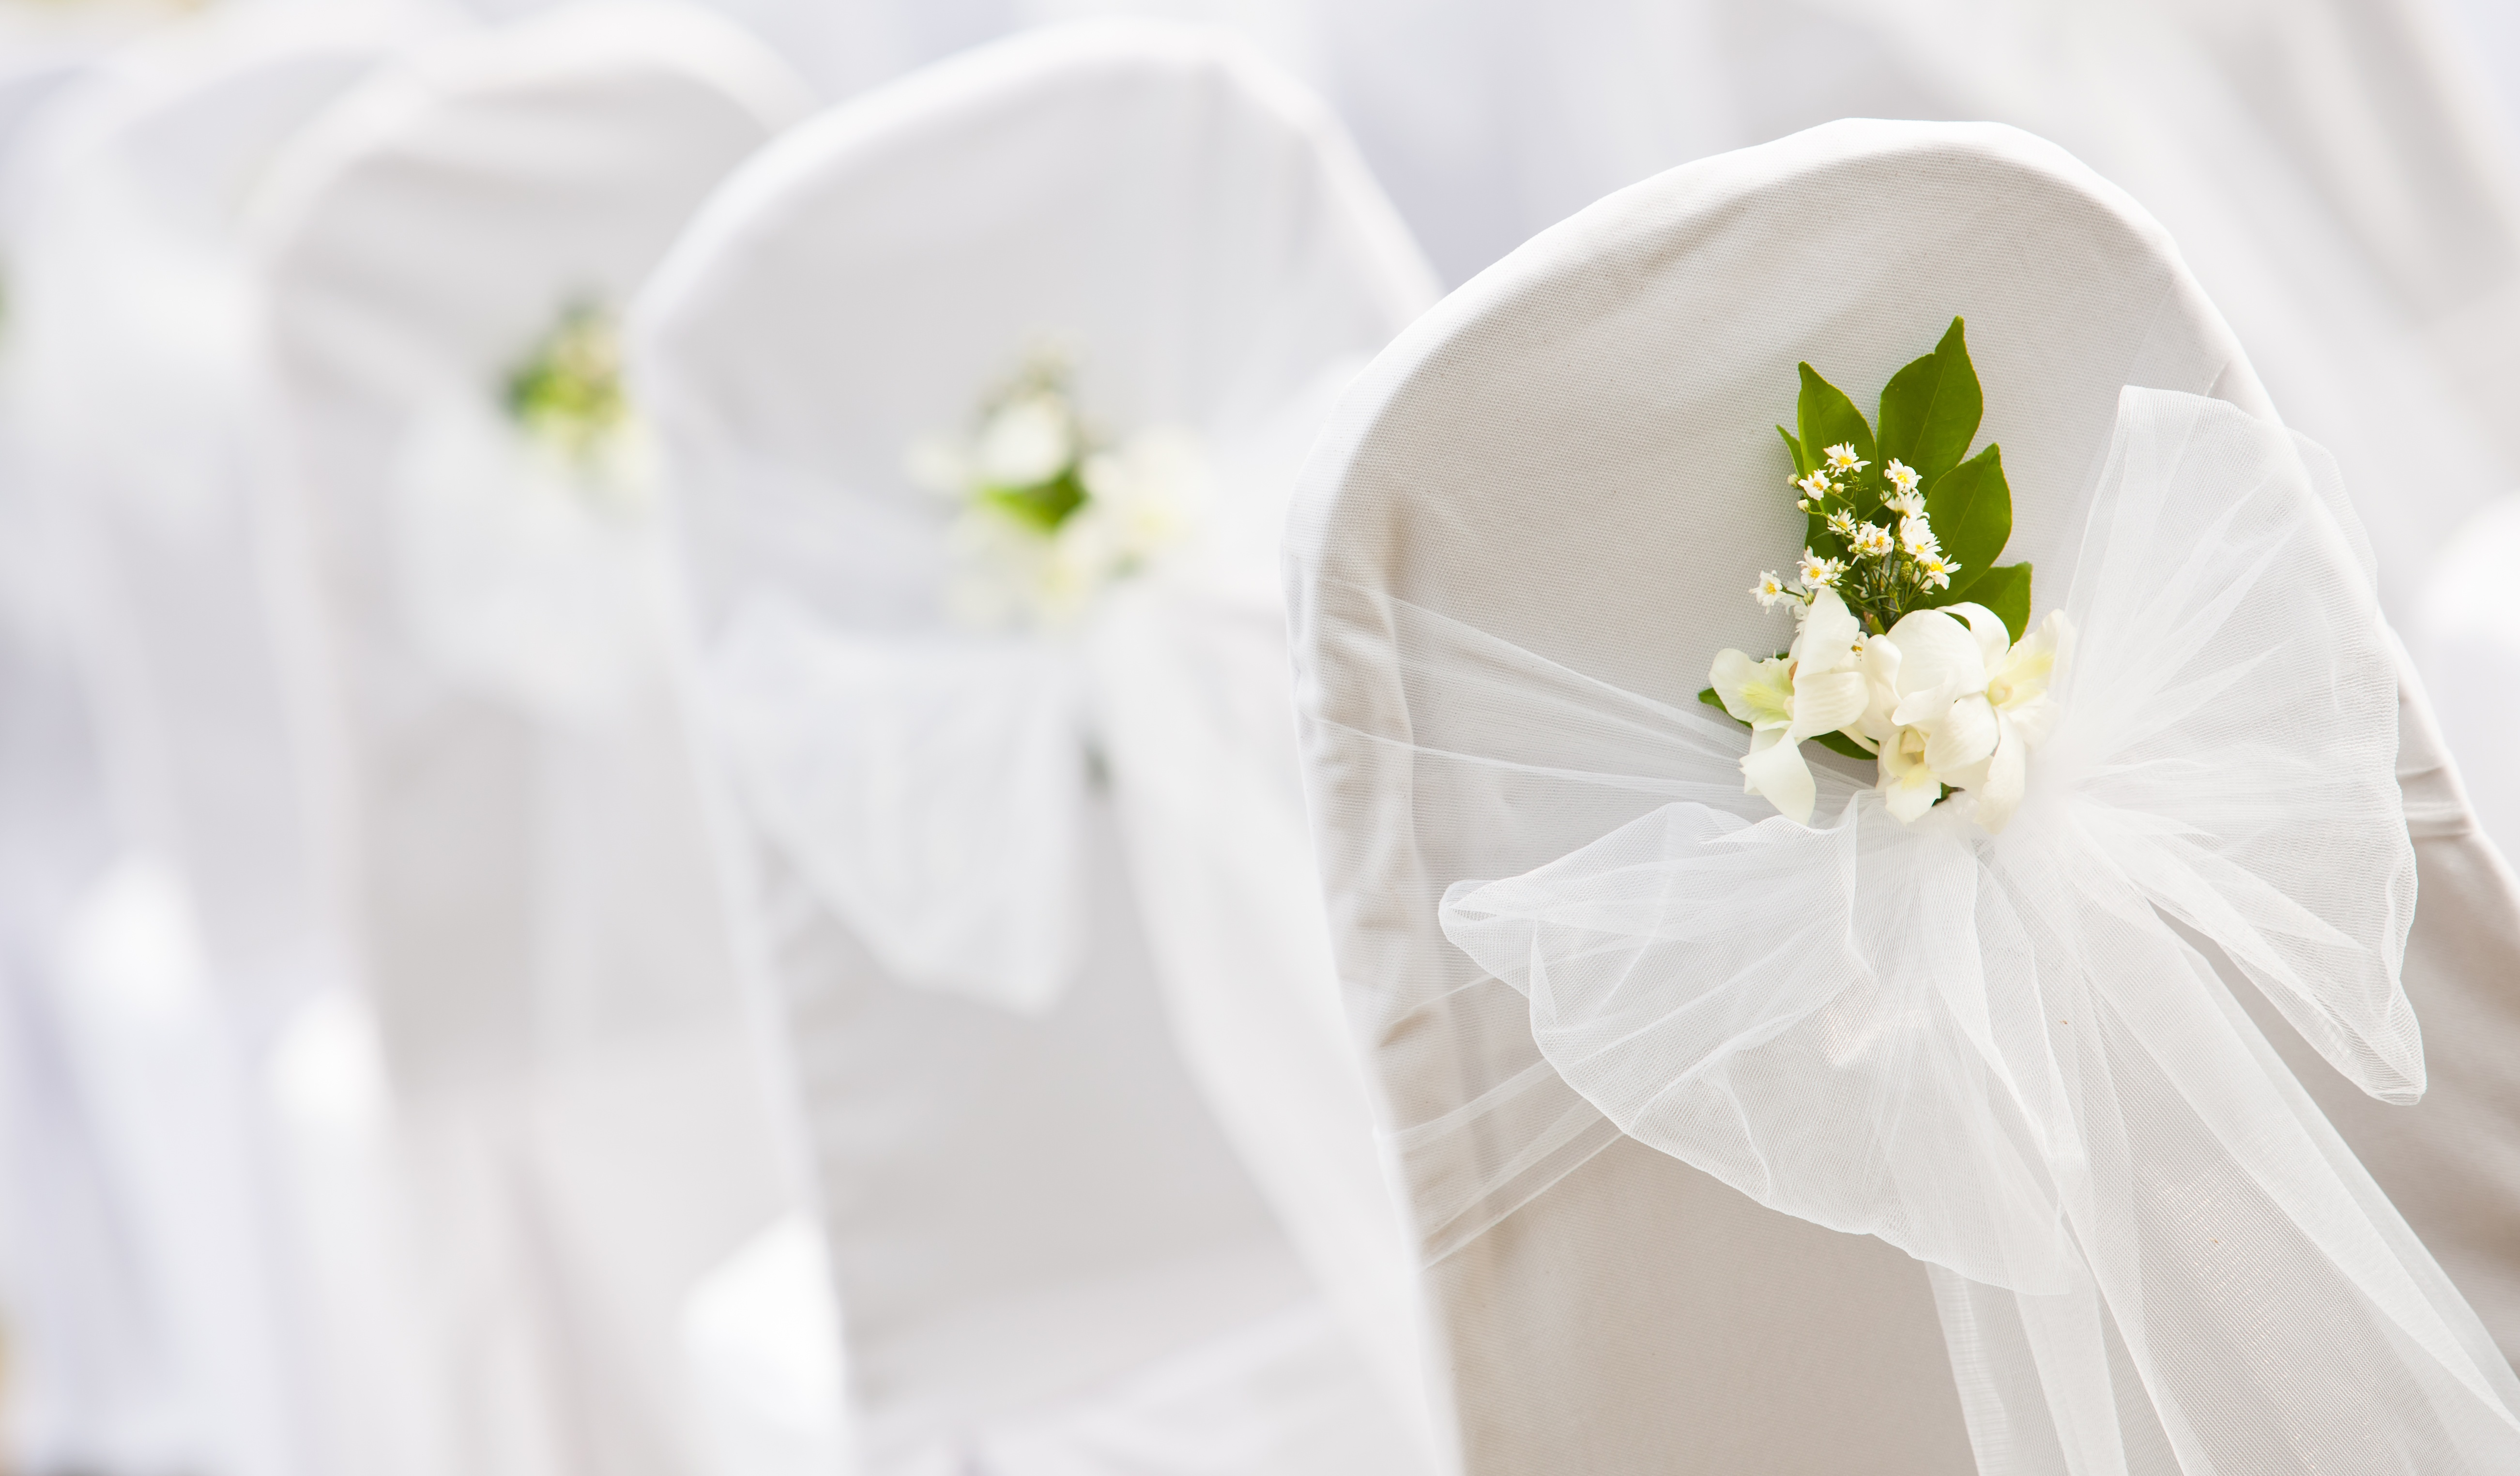 White Organza Sash with Greenery on Cotton Chair Cover  - Sophia's Final Touch - Venue Styling - Weddings & Event Decoration